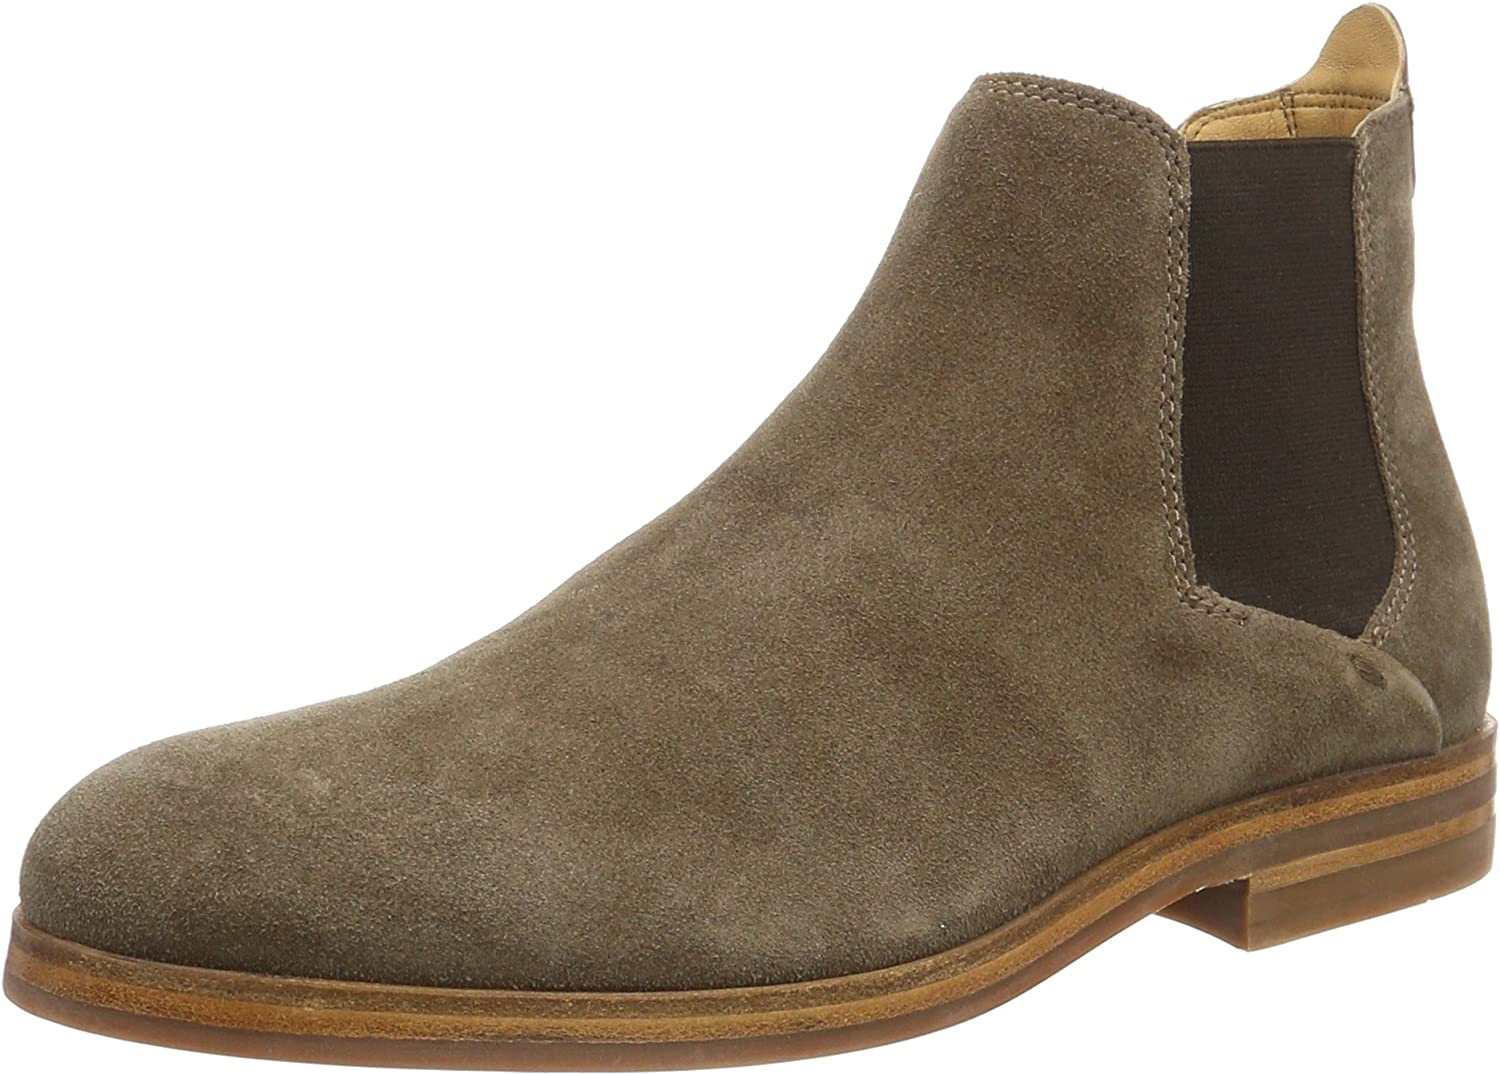 Tonti Chelsea Boots, Beige (Taupe